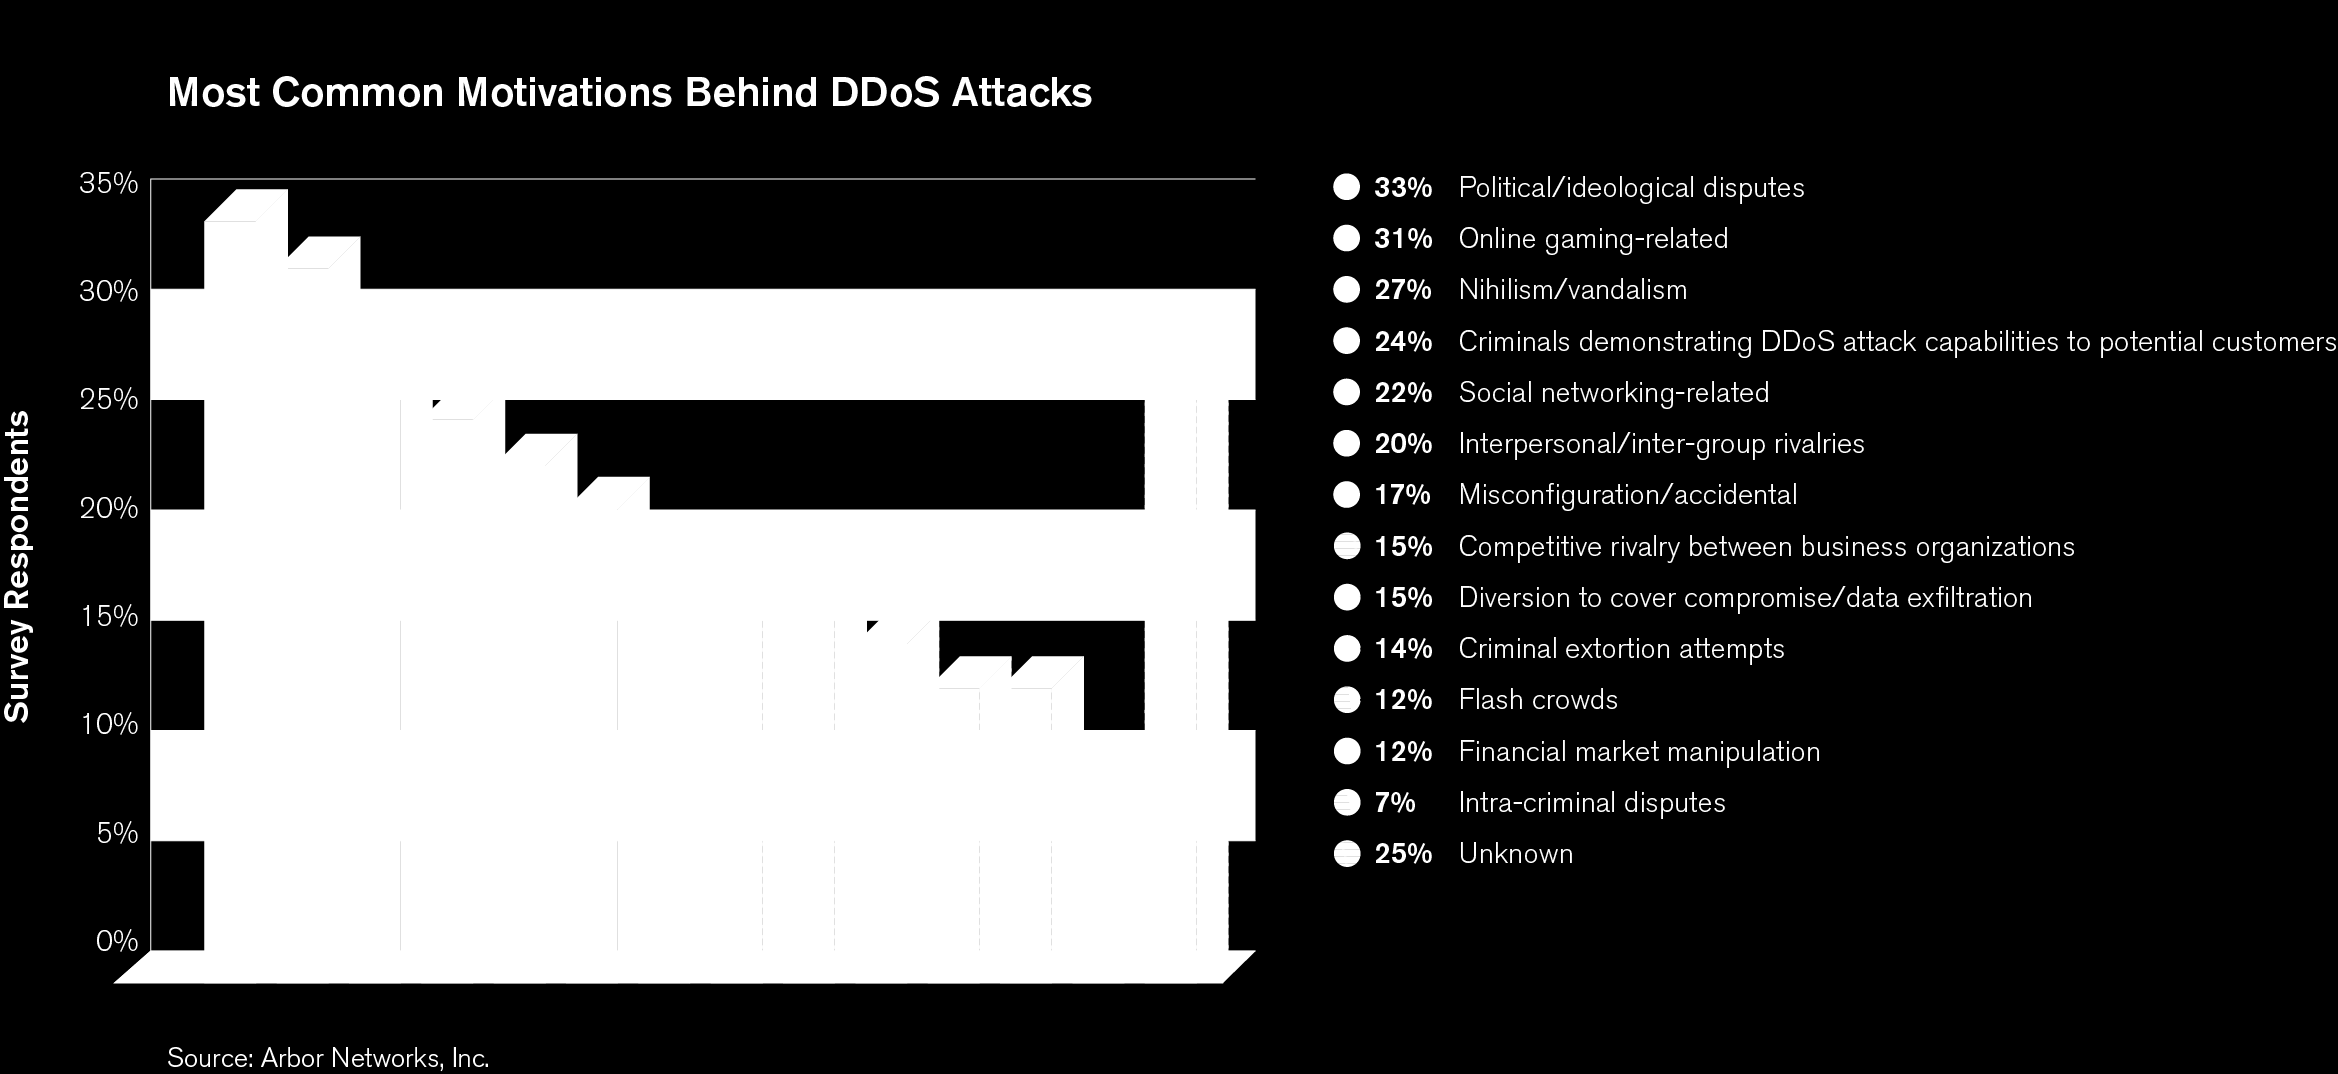 attacks motivated by extortion, competitive rivalry or as a cover for data exfiltration.